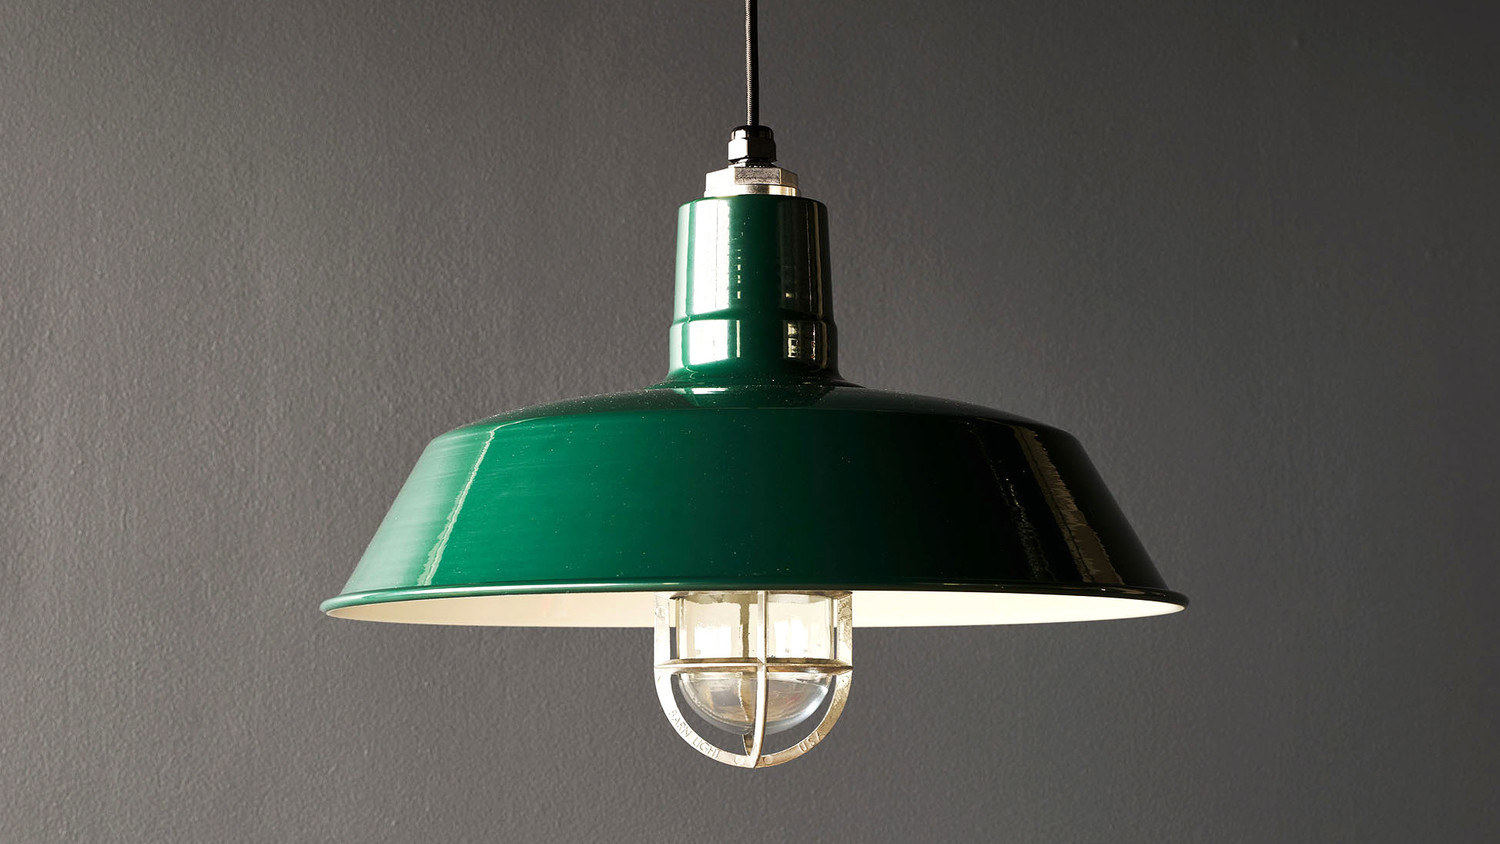 Don't Miss This Deal: Fennia 1 Light Single Cylinder Pendant Within Fennia 1 Light Single Cylinder Pendants (Photo 14 of 30)